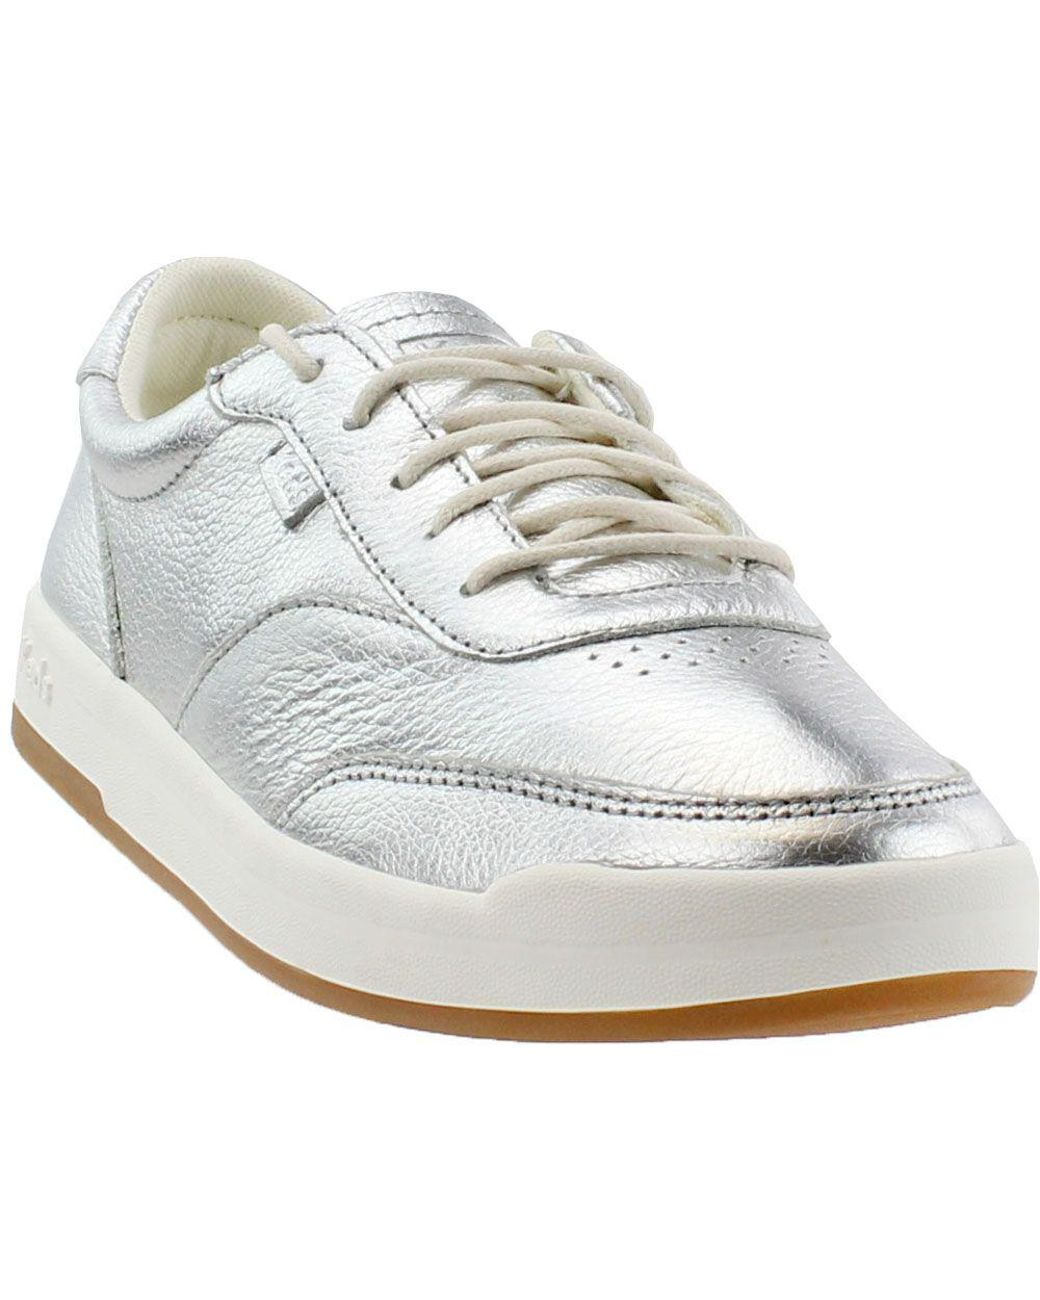 90ed2279ef5 Lyst - Keds Match Point in Metallic